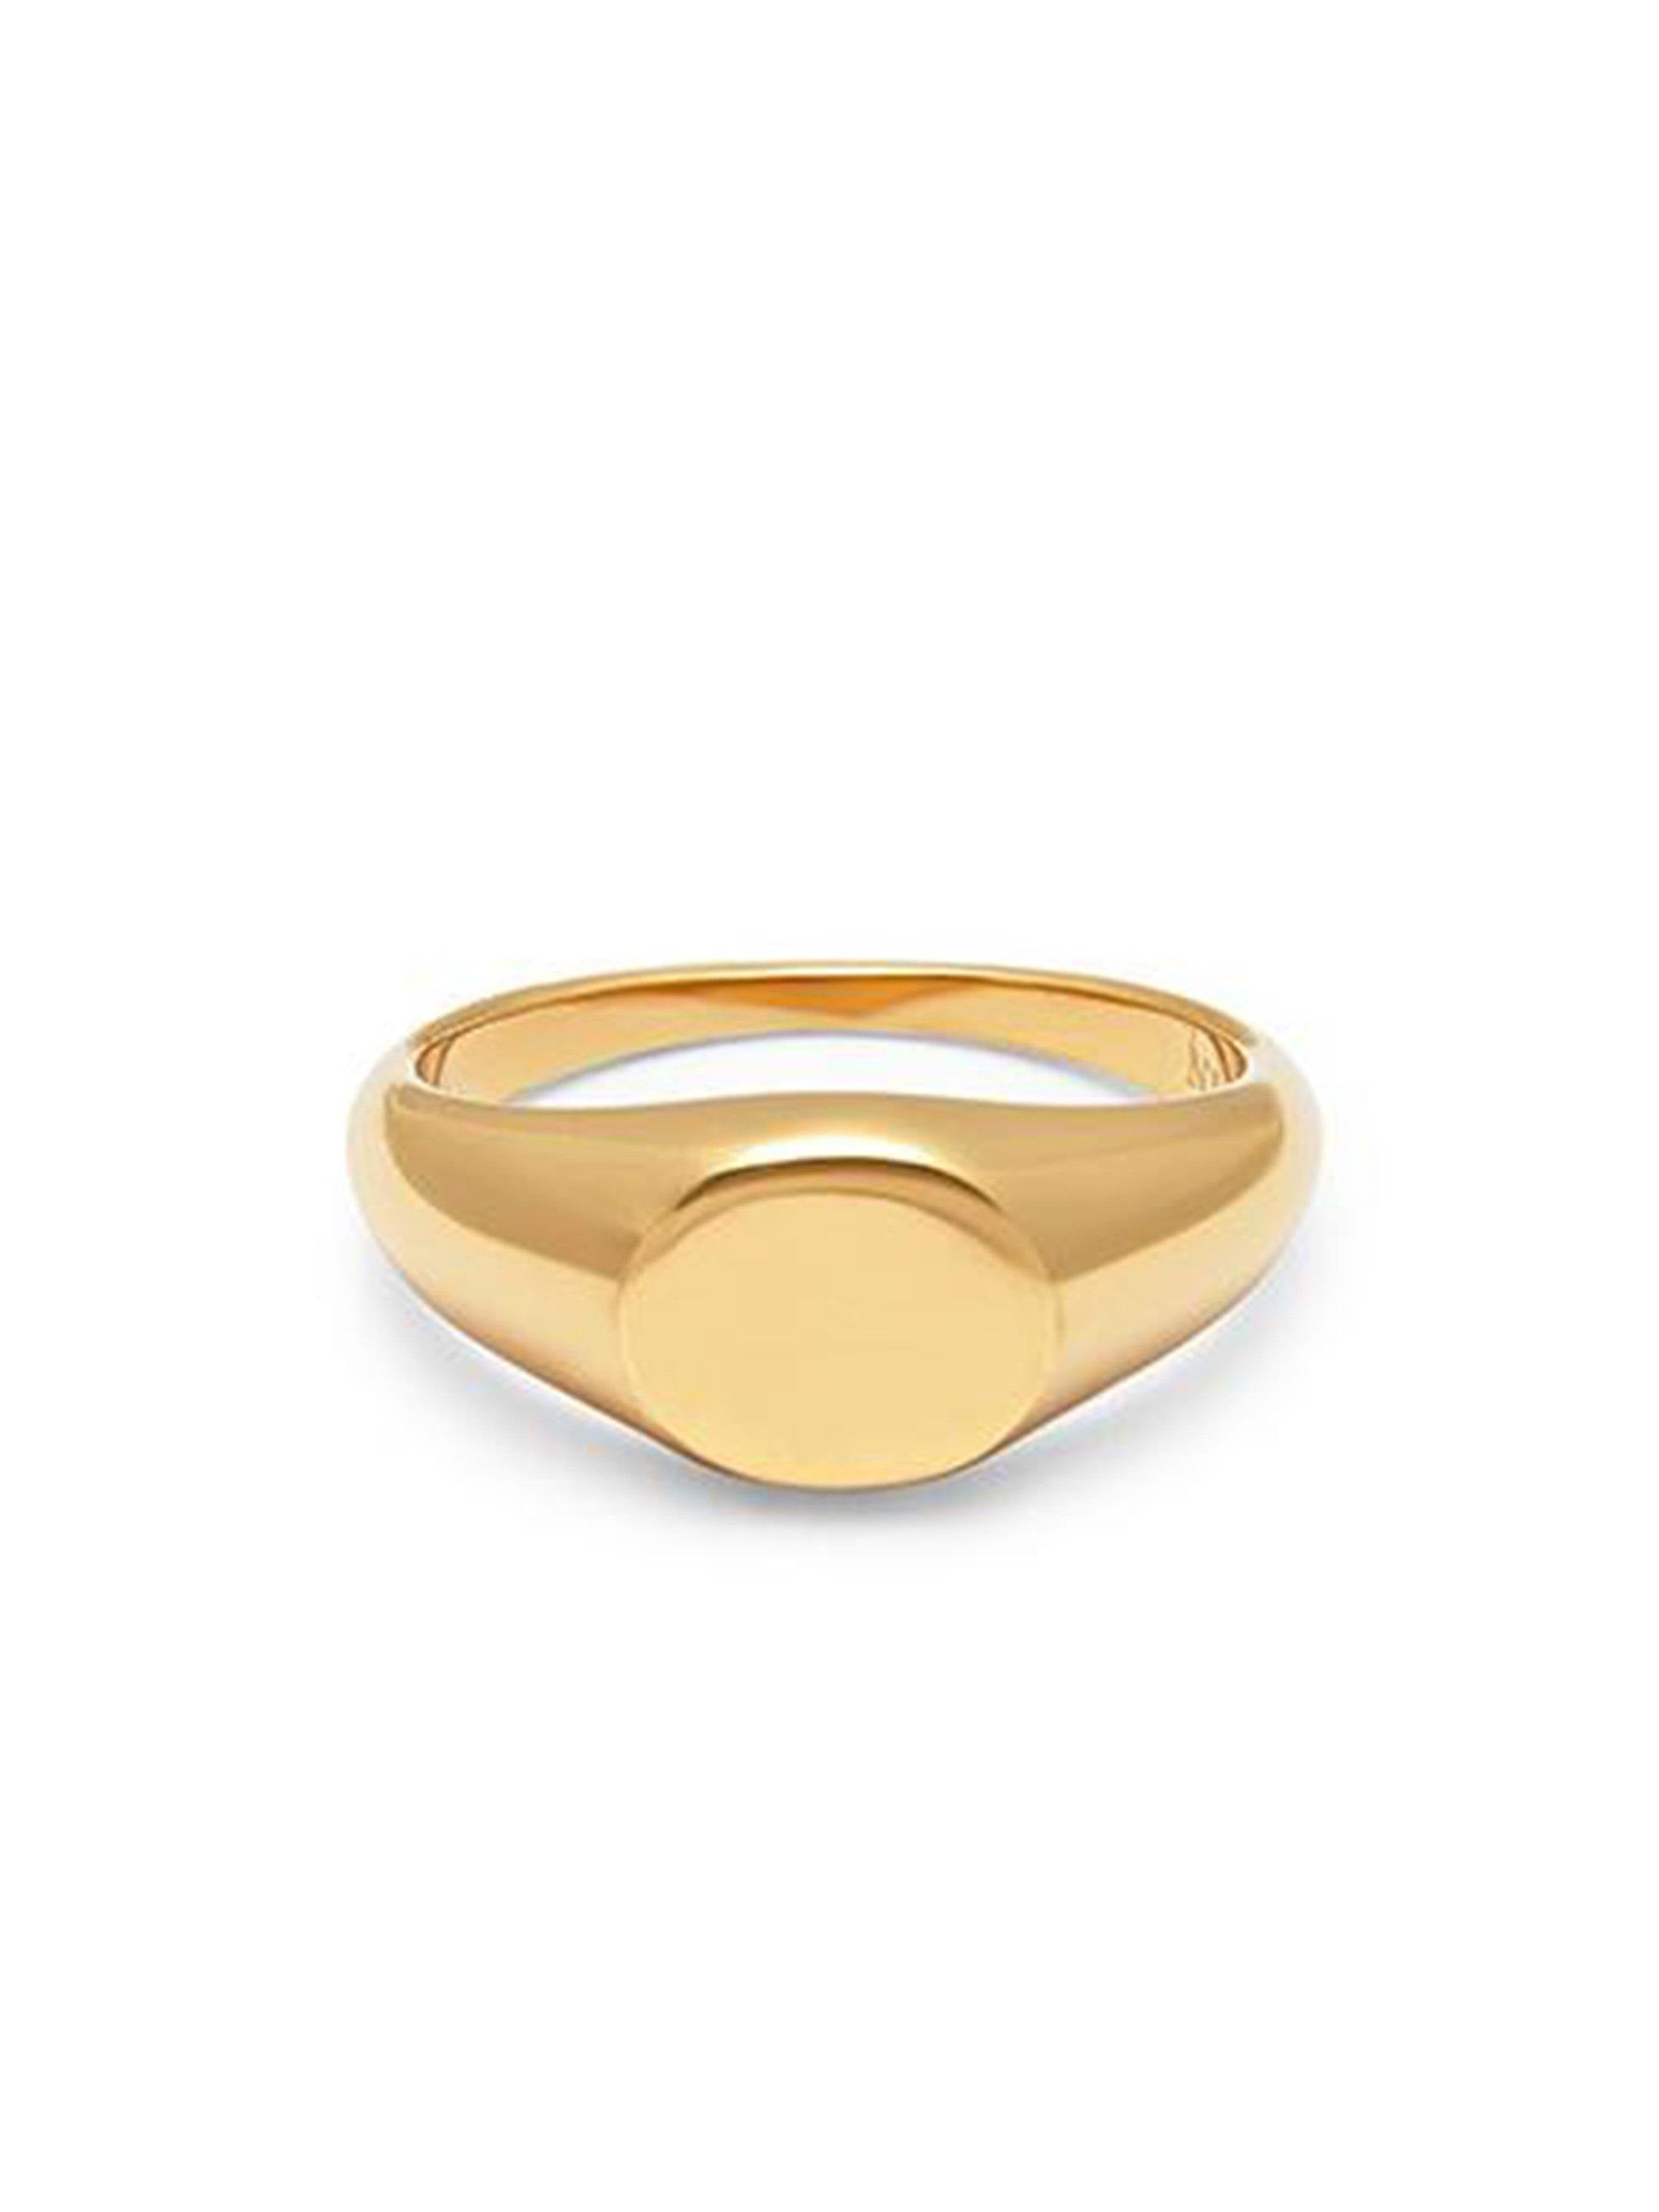 Skyfall Mini Signet Ring in Gold